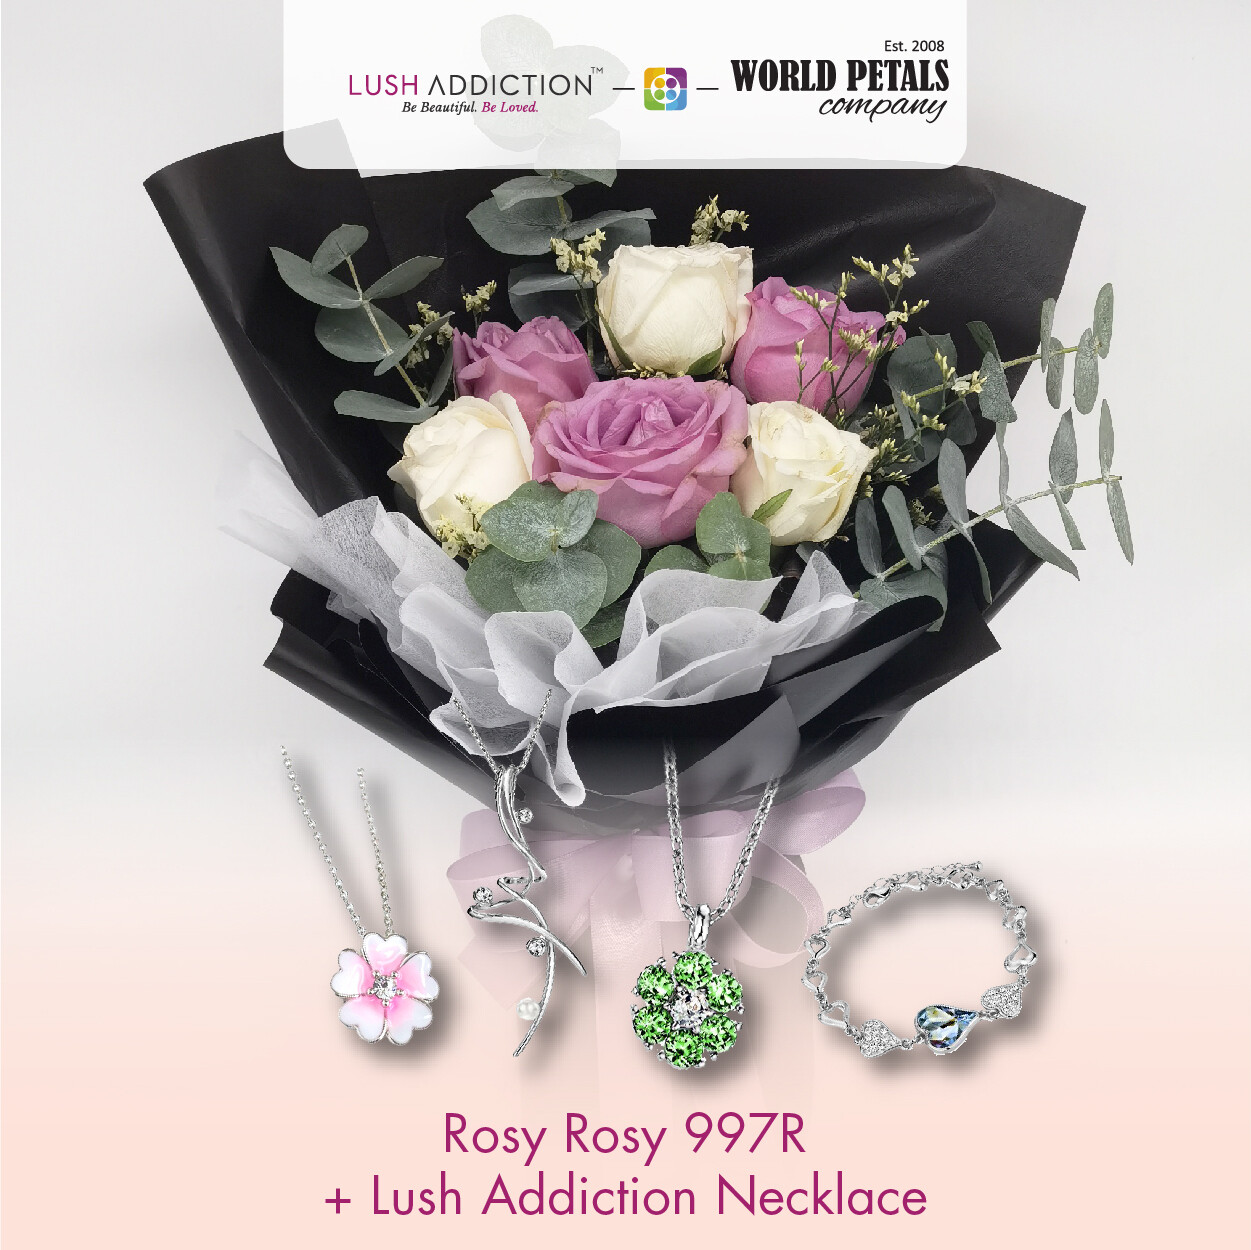 Rosy Rosy + Lush Addiction Necklace (By: World Petals Florist from KL)